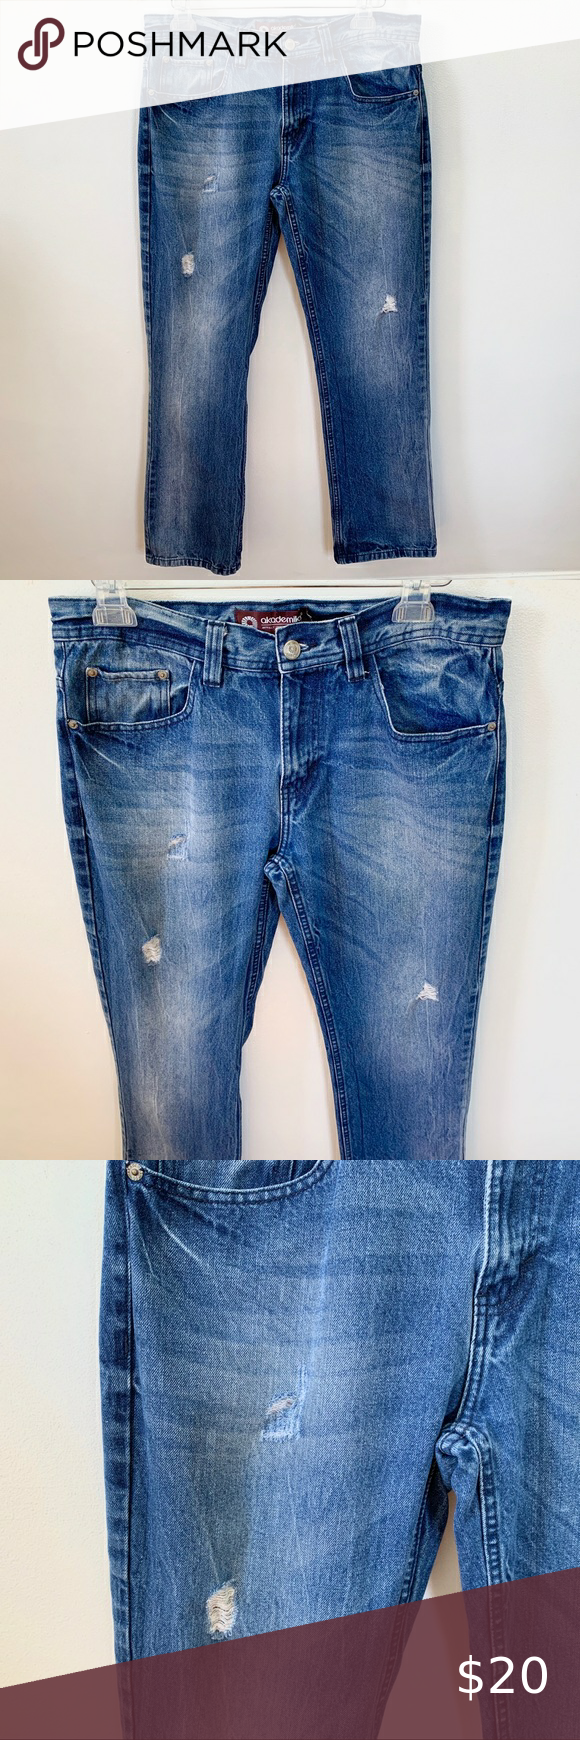 Akademiks Destressed Ripped Straight Leg Jeans Excellent used condition. Akademiks Jeans Straight